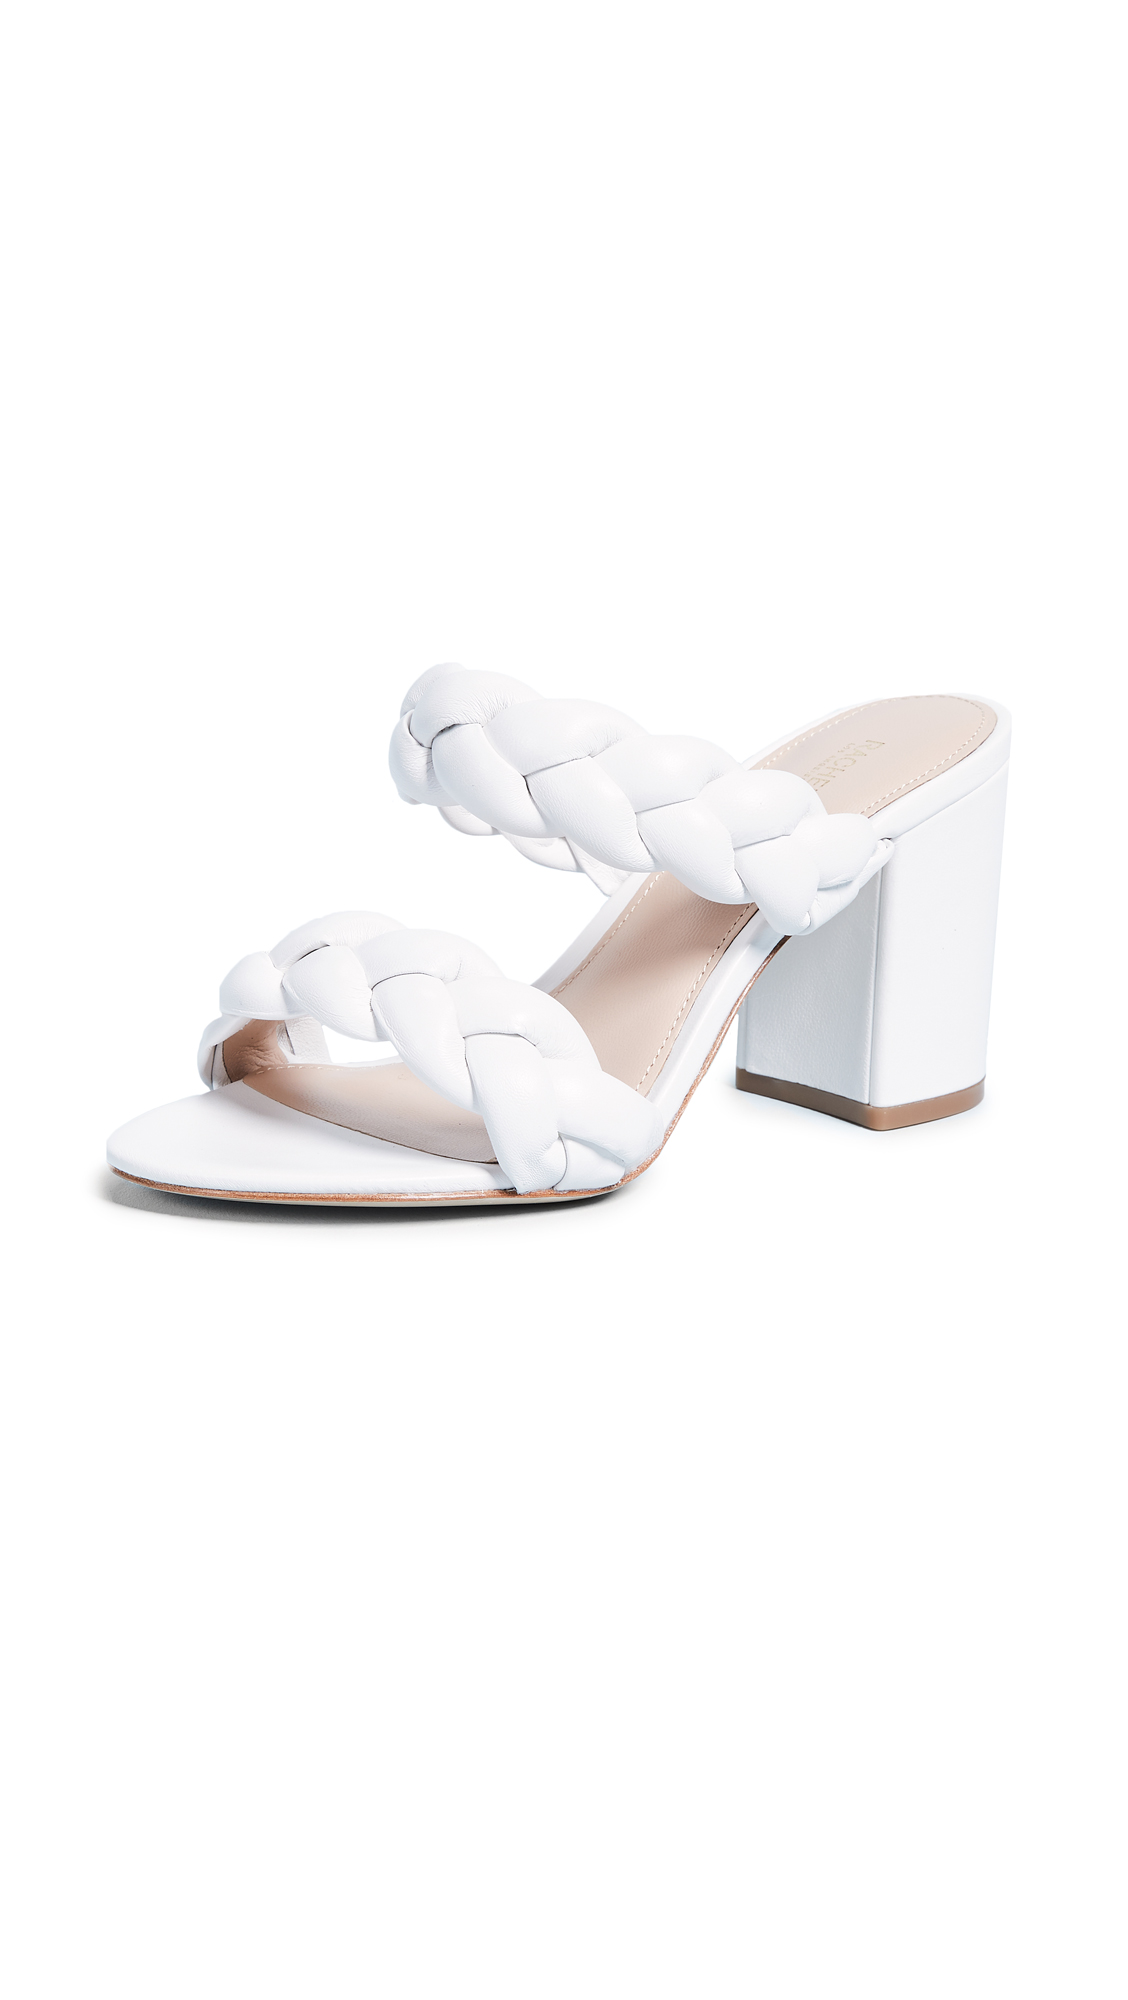 Rachel Zoe Demi Braid Sandals